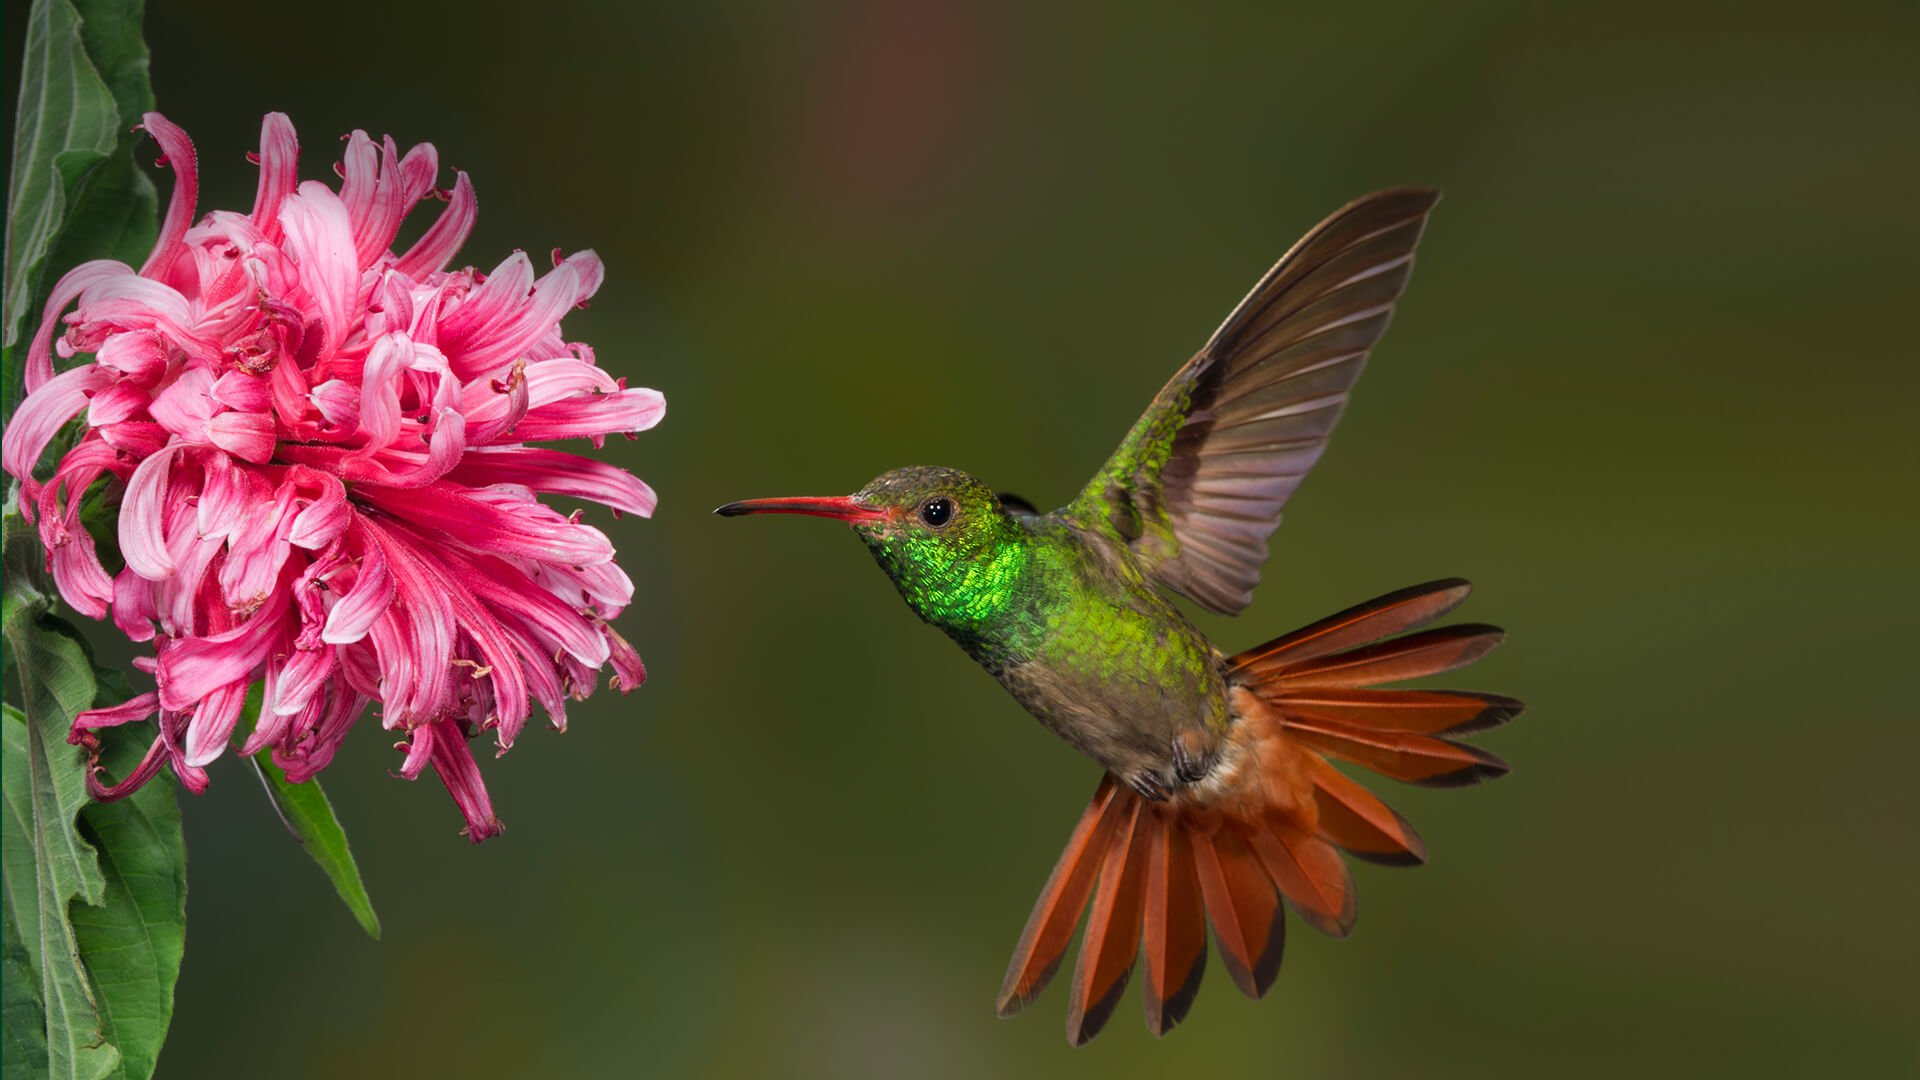 Hummingbird-Meaning-–-Symbolic-and-Spiritual-Meaning-of-Hummingbirds.jpg